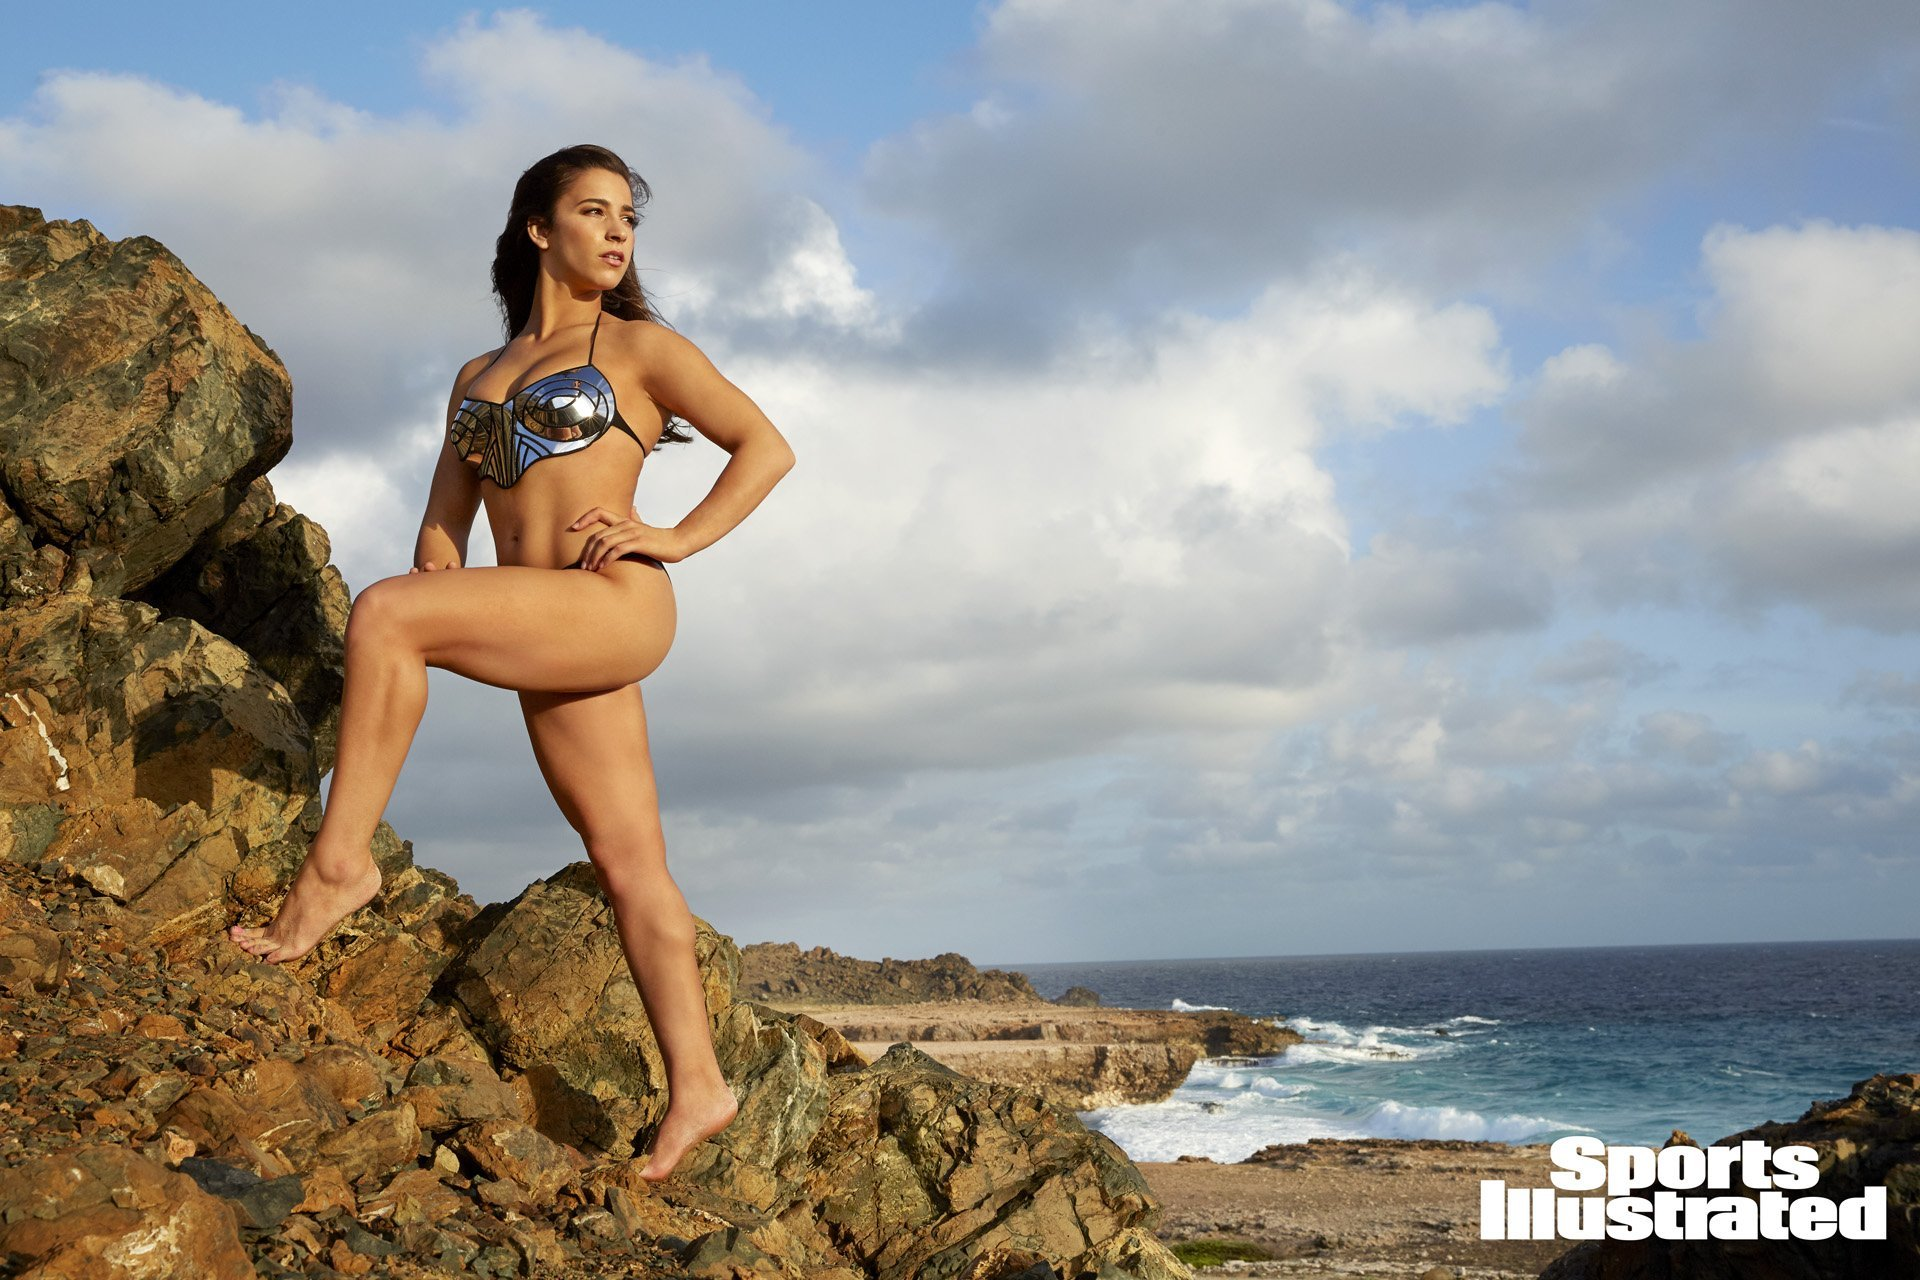 SI Swimsuit Edition - Aly Raisman